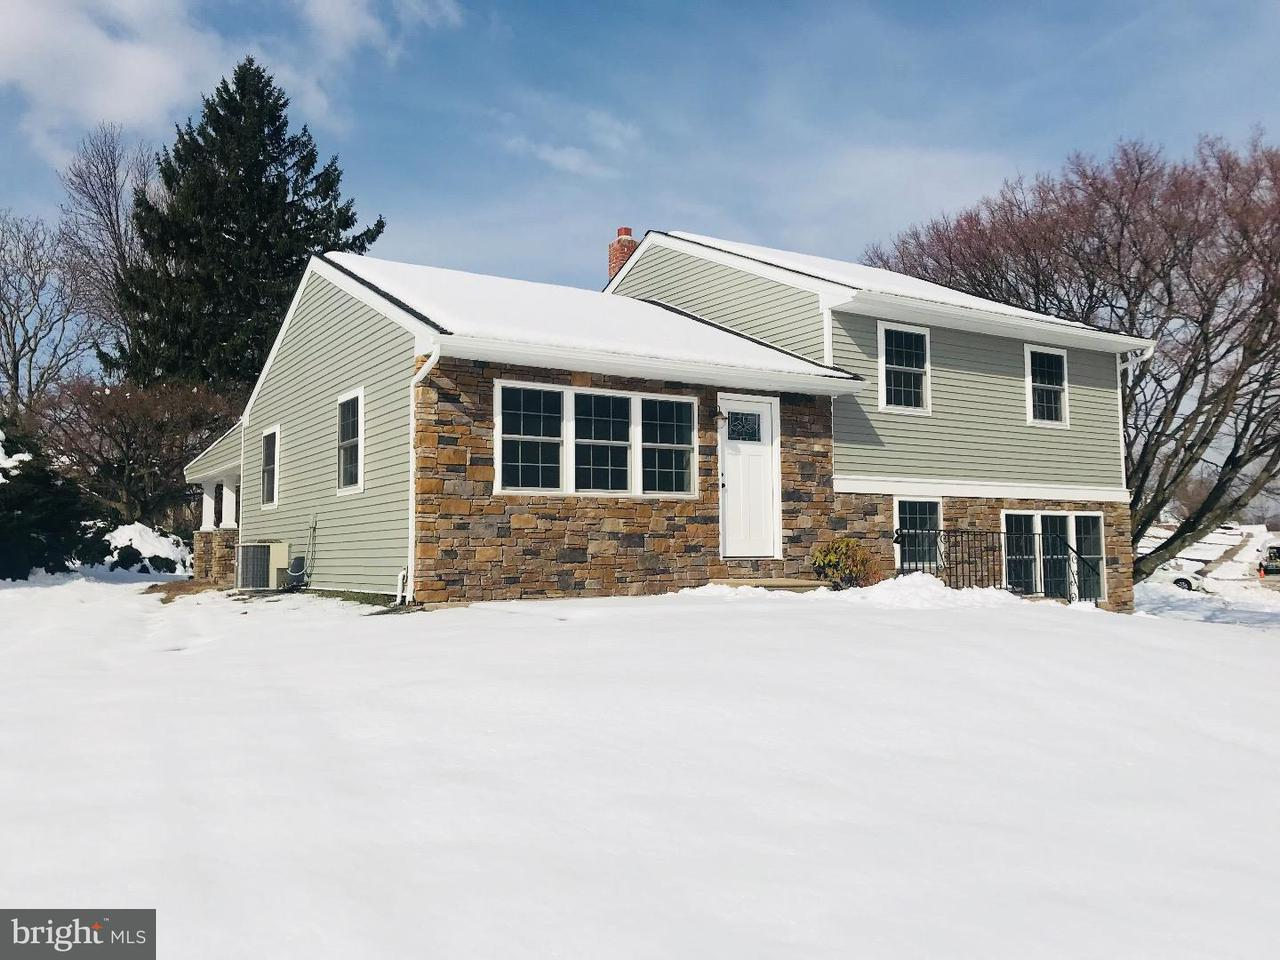 342 N Central Broomall, PA 19008